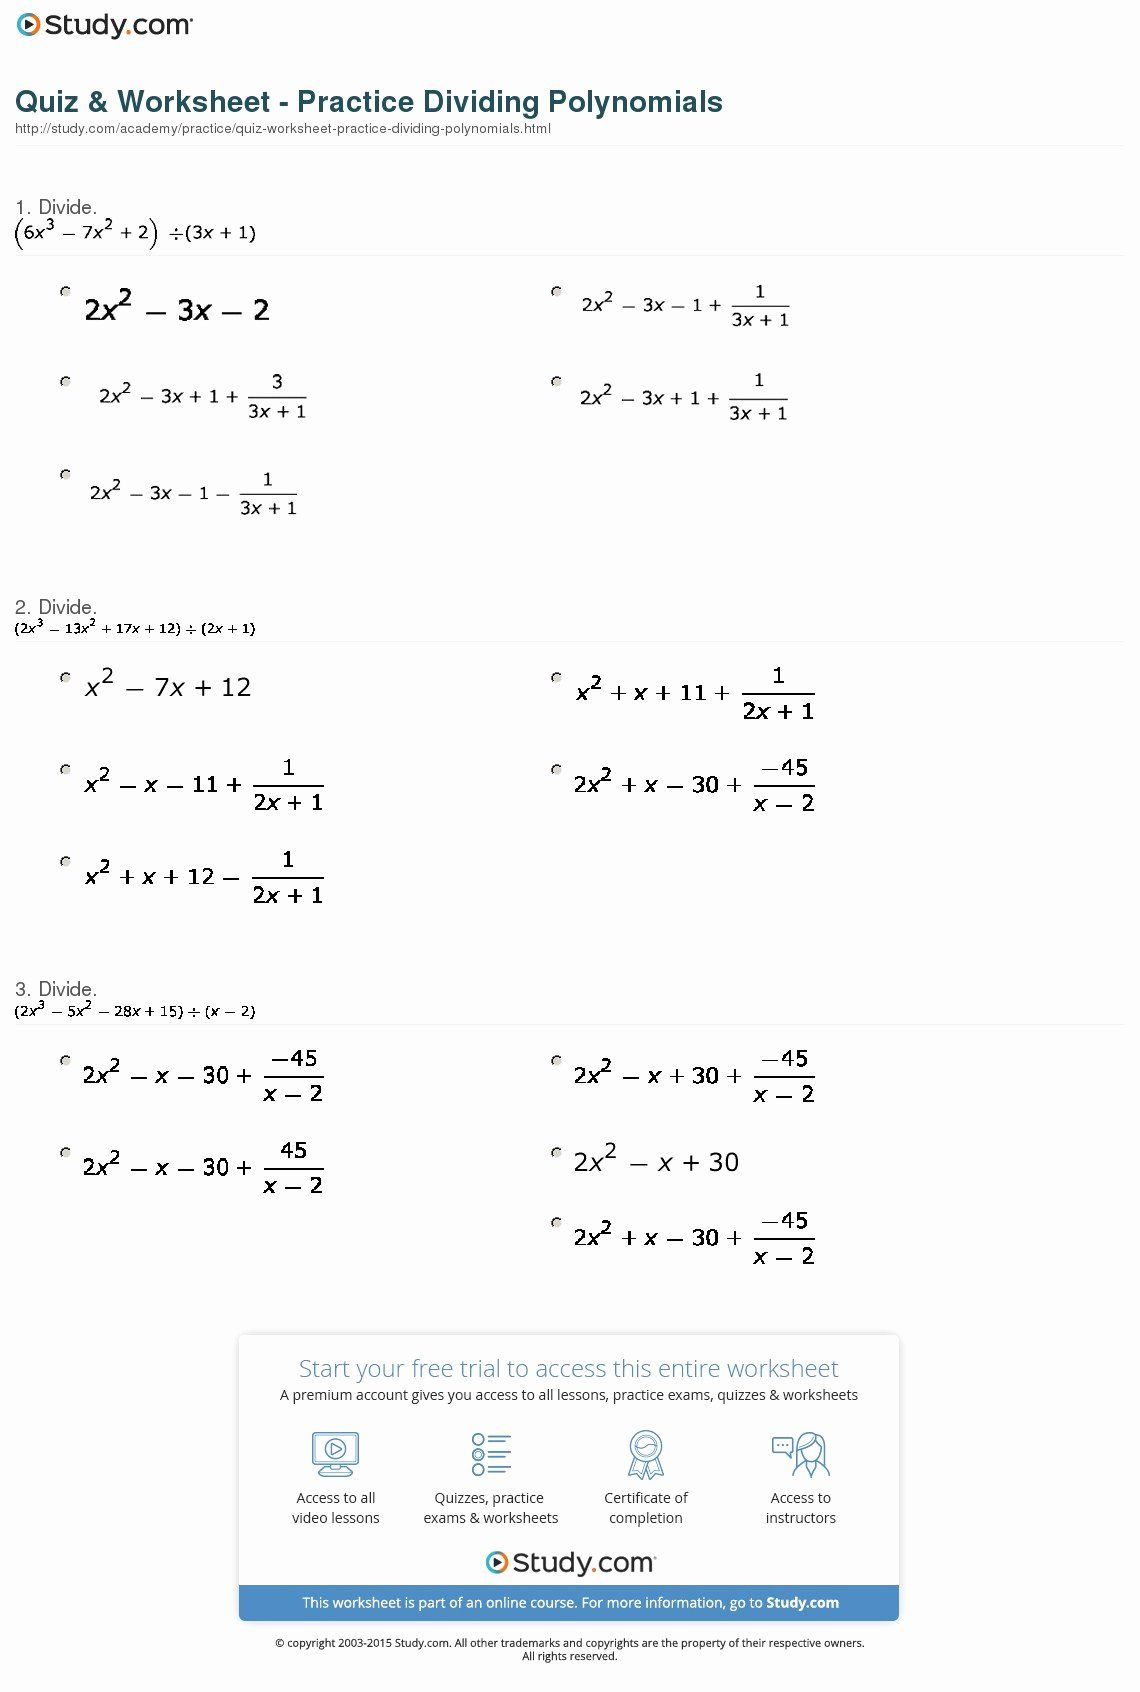 Operations With Polynomials Worksheet Unique Math Worksheet Division Polynomials Breadandhearth In 2020 Persuasive Writing Prompts Polynomials Algebra Worksheets